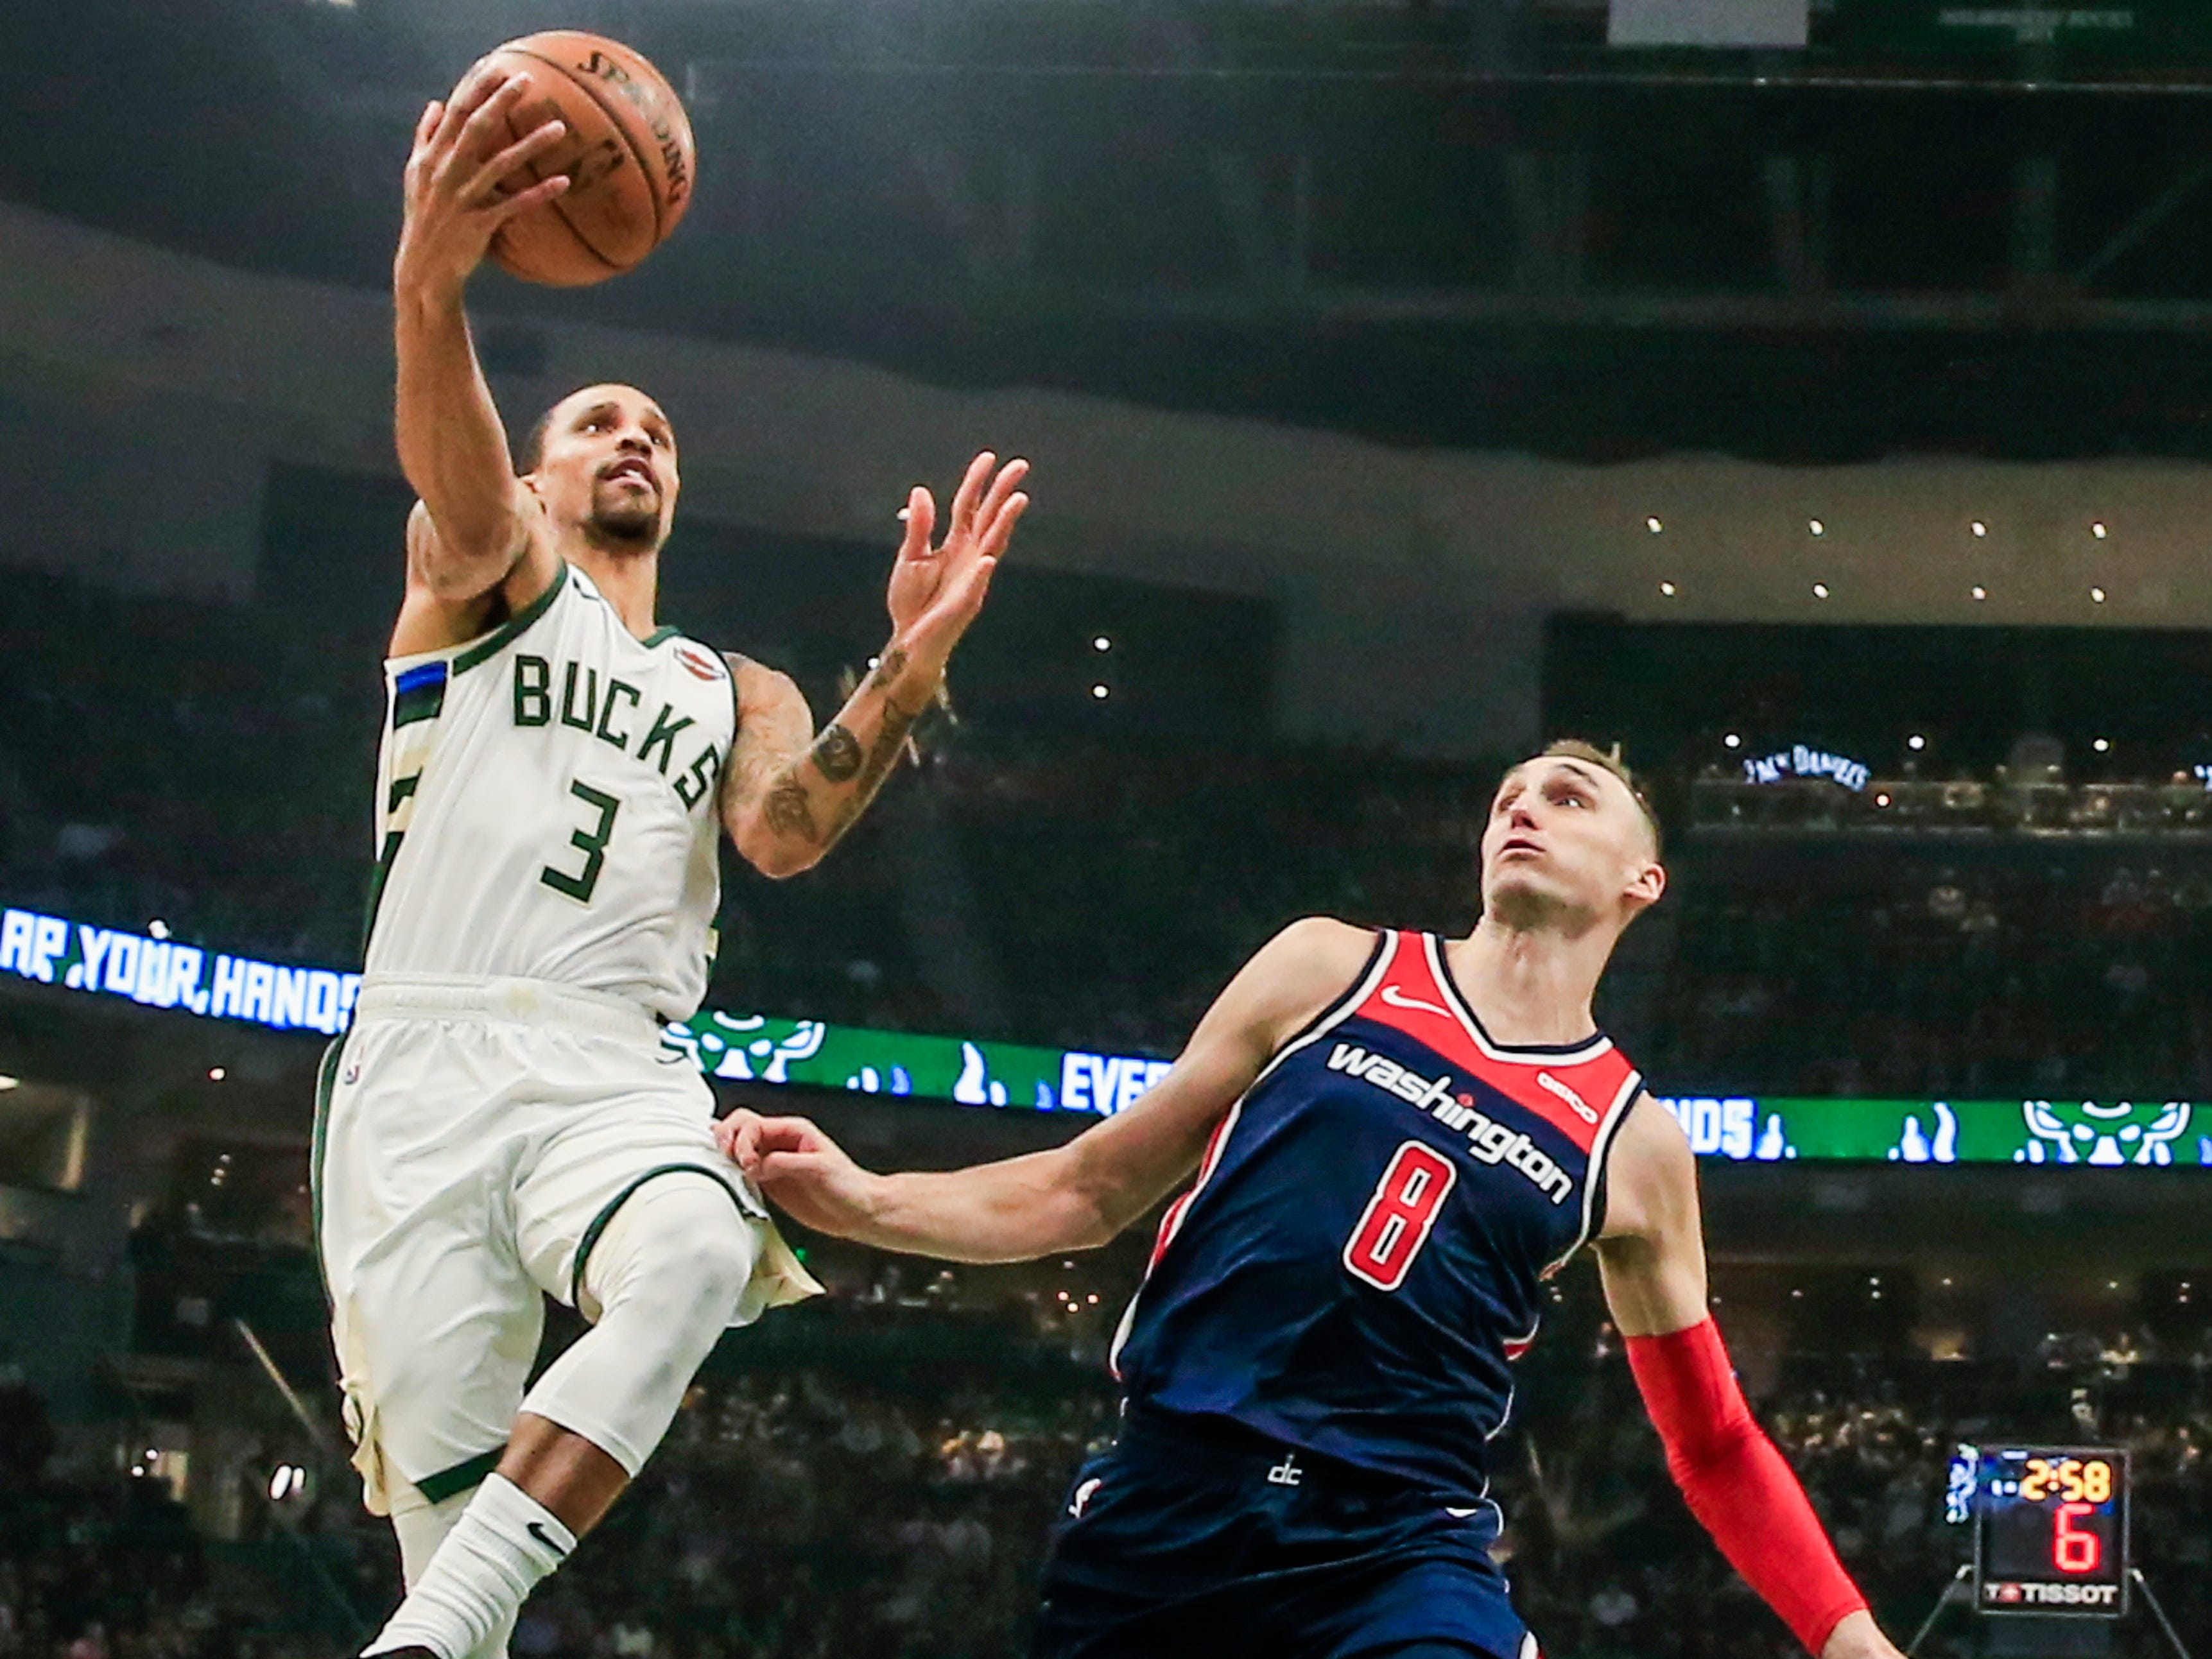 Bucks guard George Hill gets to the basket for a shot past Wizards forward Sam Dekker on Wednesday night.